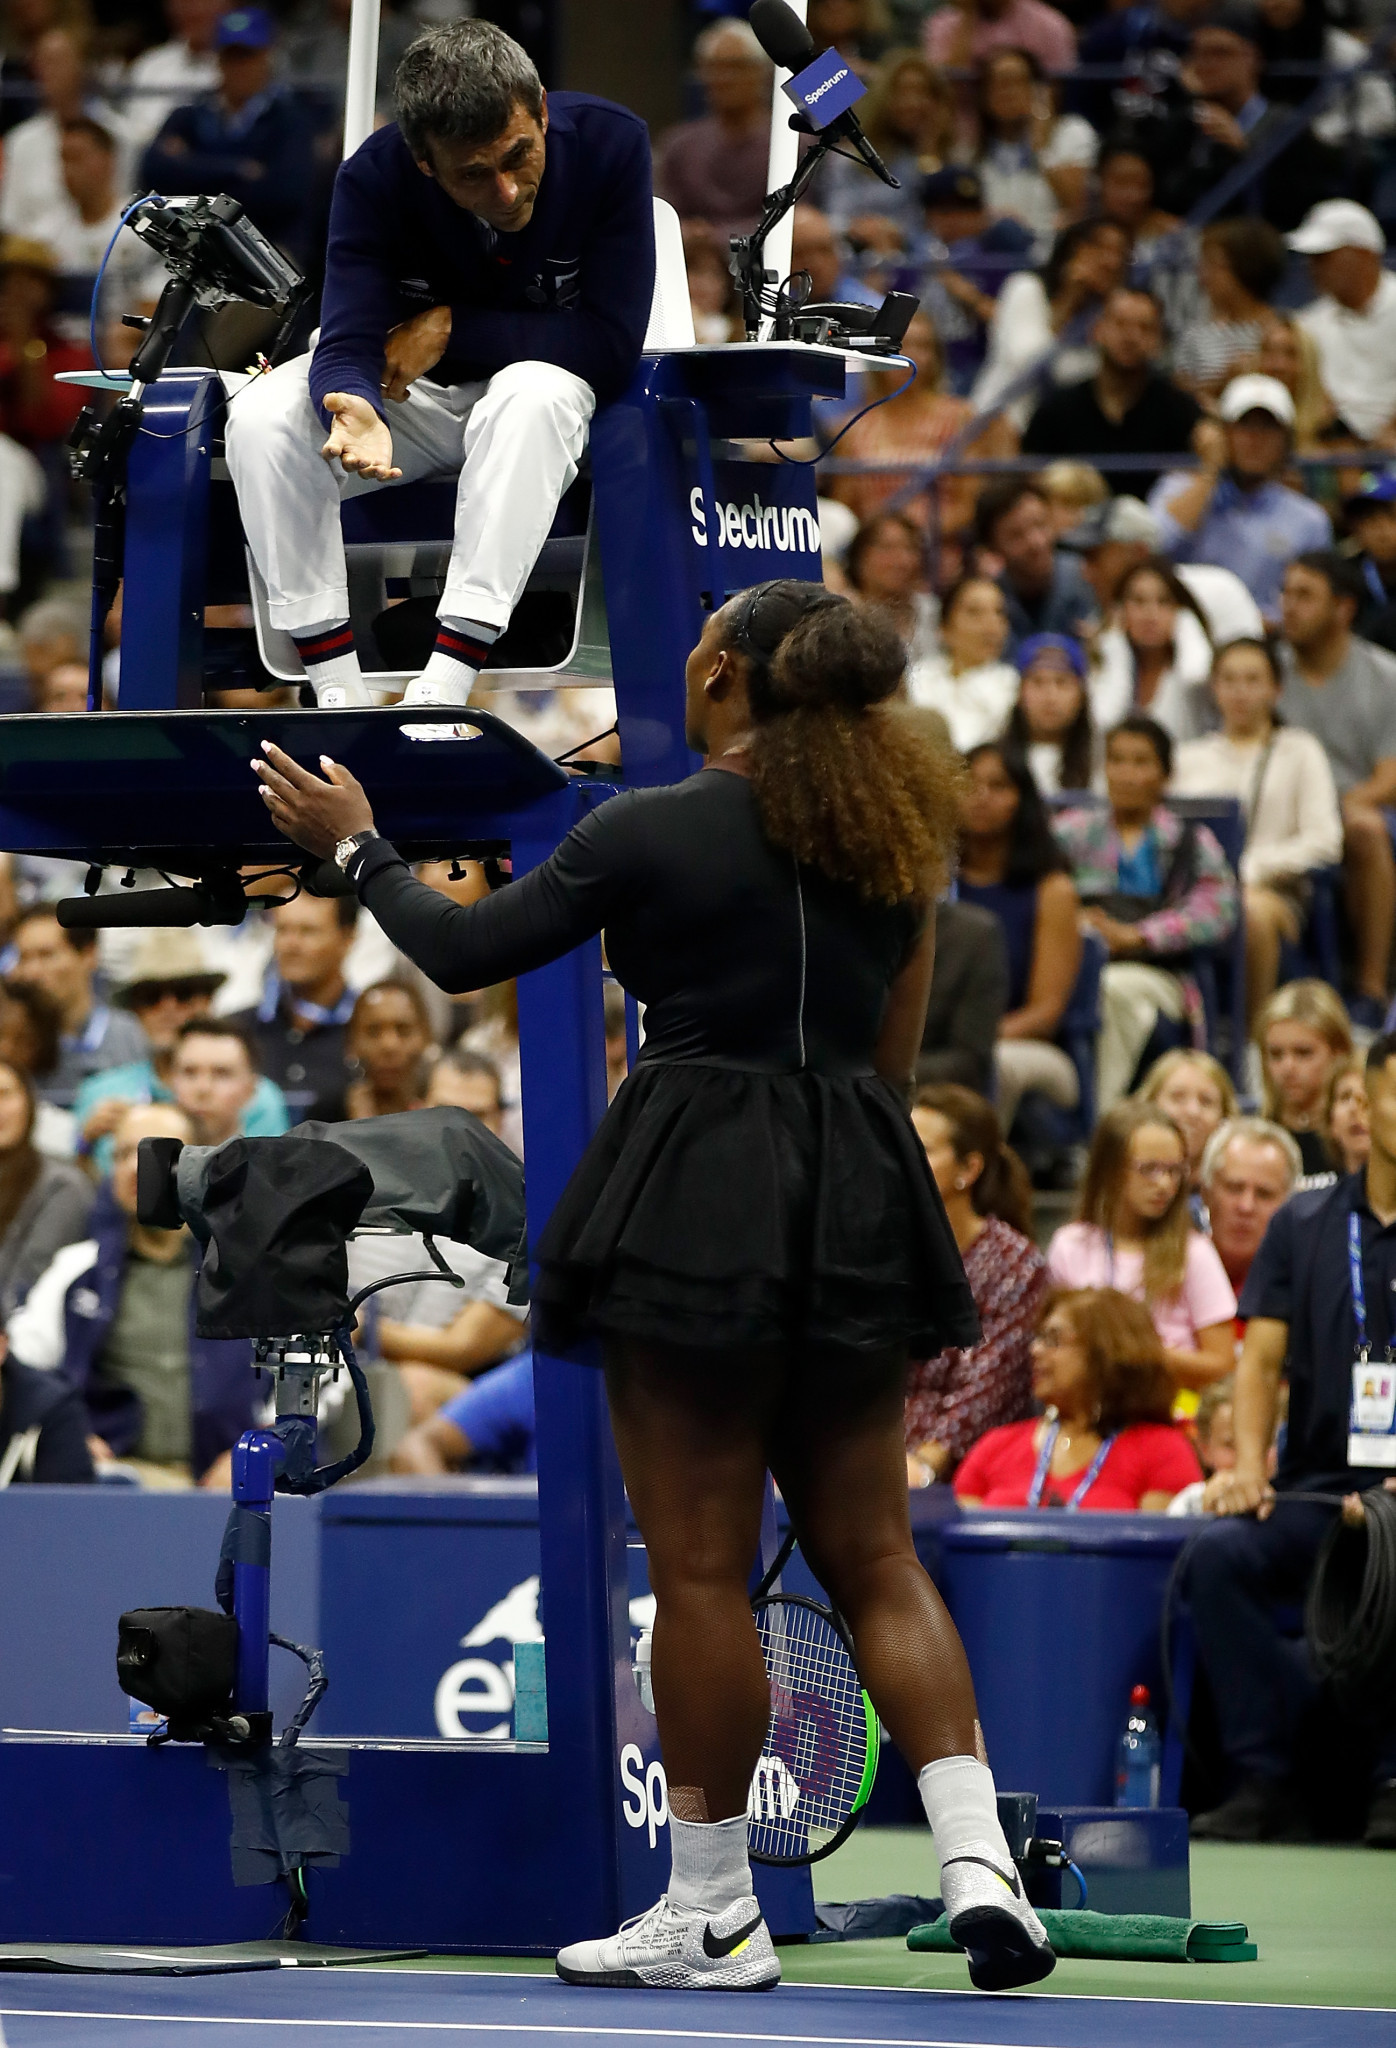 Serena Williams of the United States argues with umpire Carlos Ramos during her defeat in the 2018 US Open final ©Getty Images